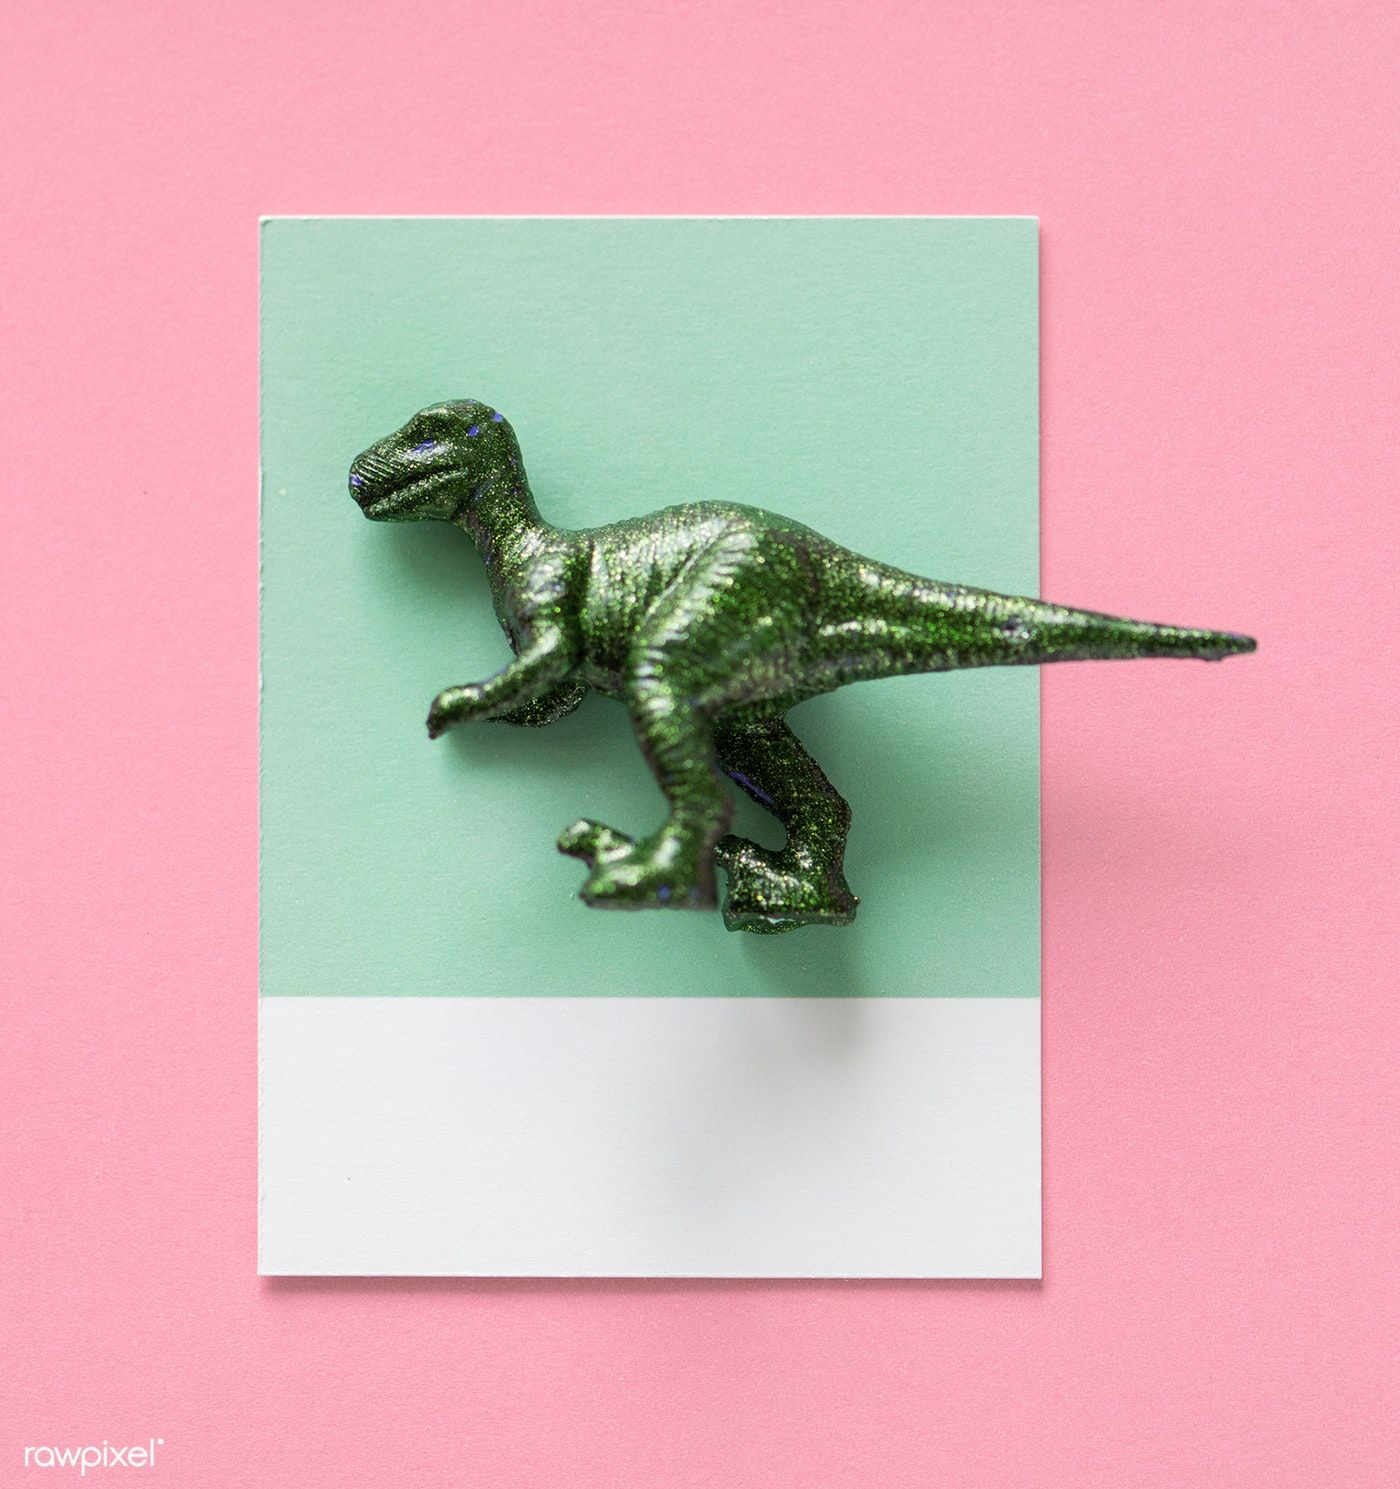 Colorful and cute miniature dinosaur figure free image